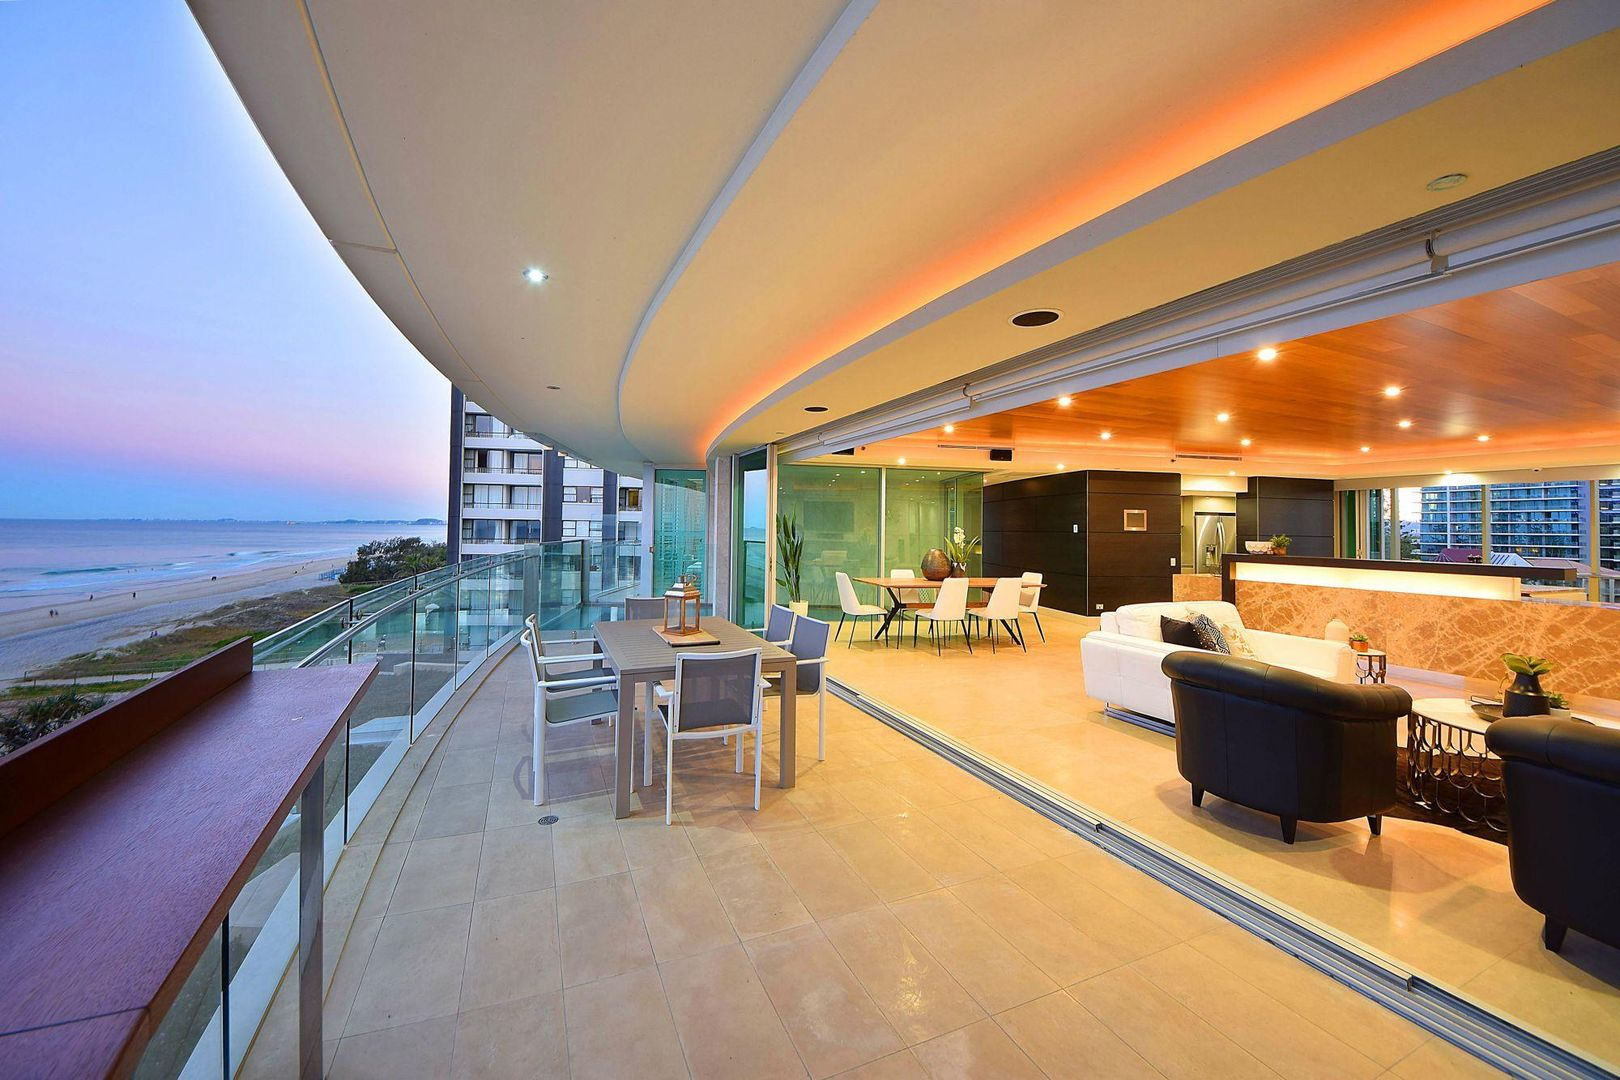 4 'Jade' 35 Northcliffe Terrace, Surfers Paradise QLD 4217, Image 2